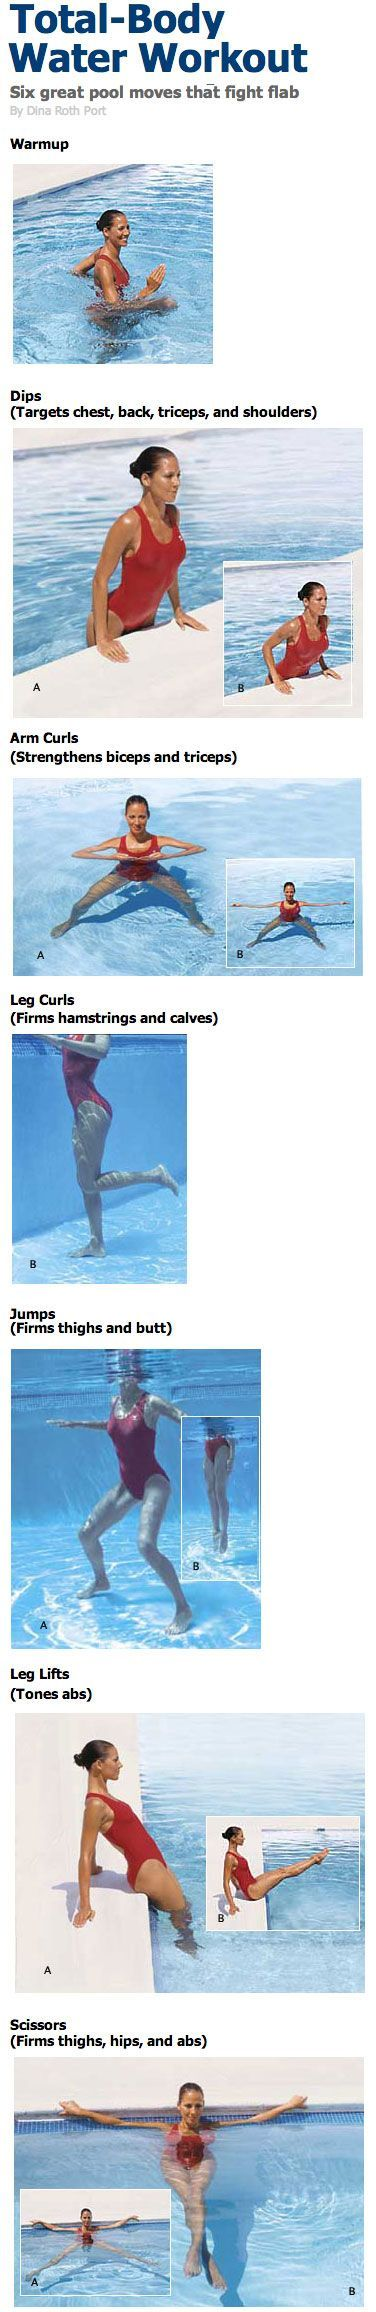 Pool exercises. See this is what we should be doing!